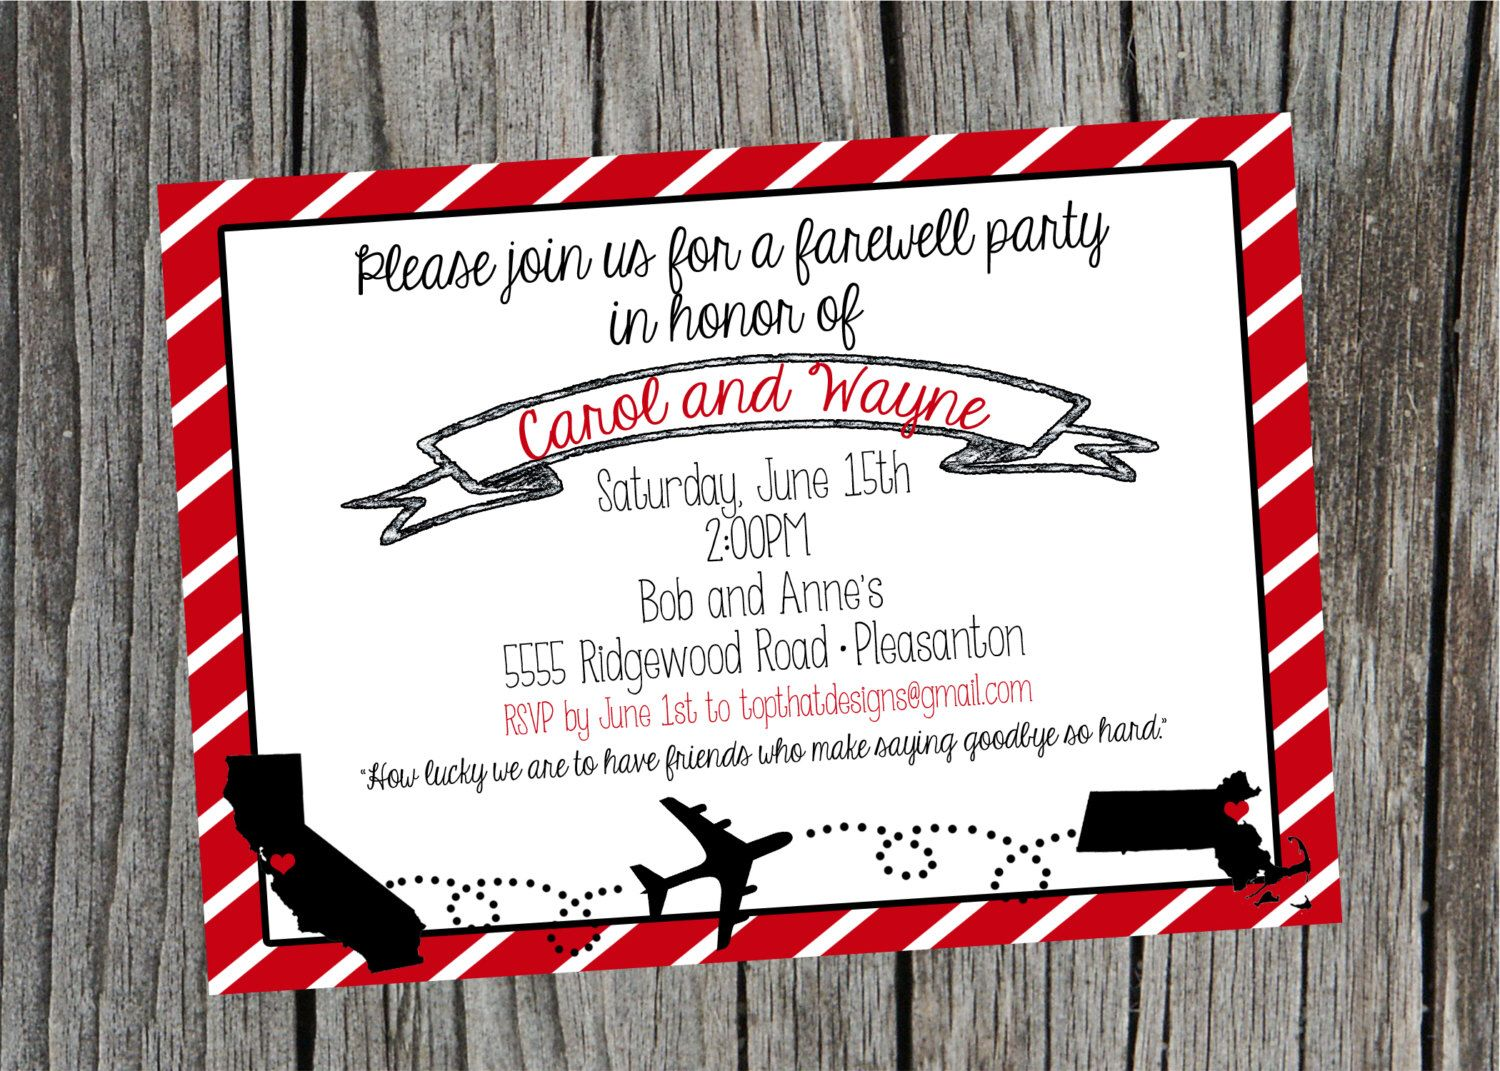 Pin by Alicia Strickland on Erika\'s going away party | Pinterest ...